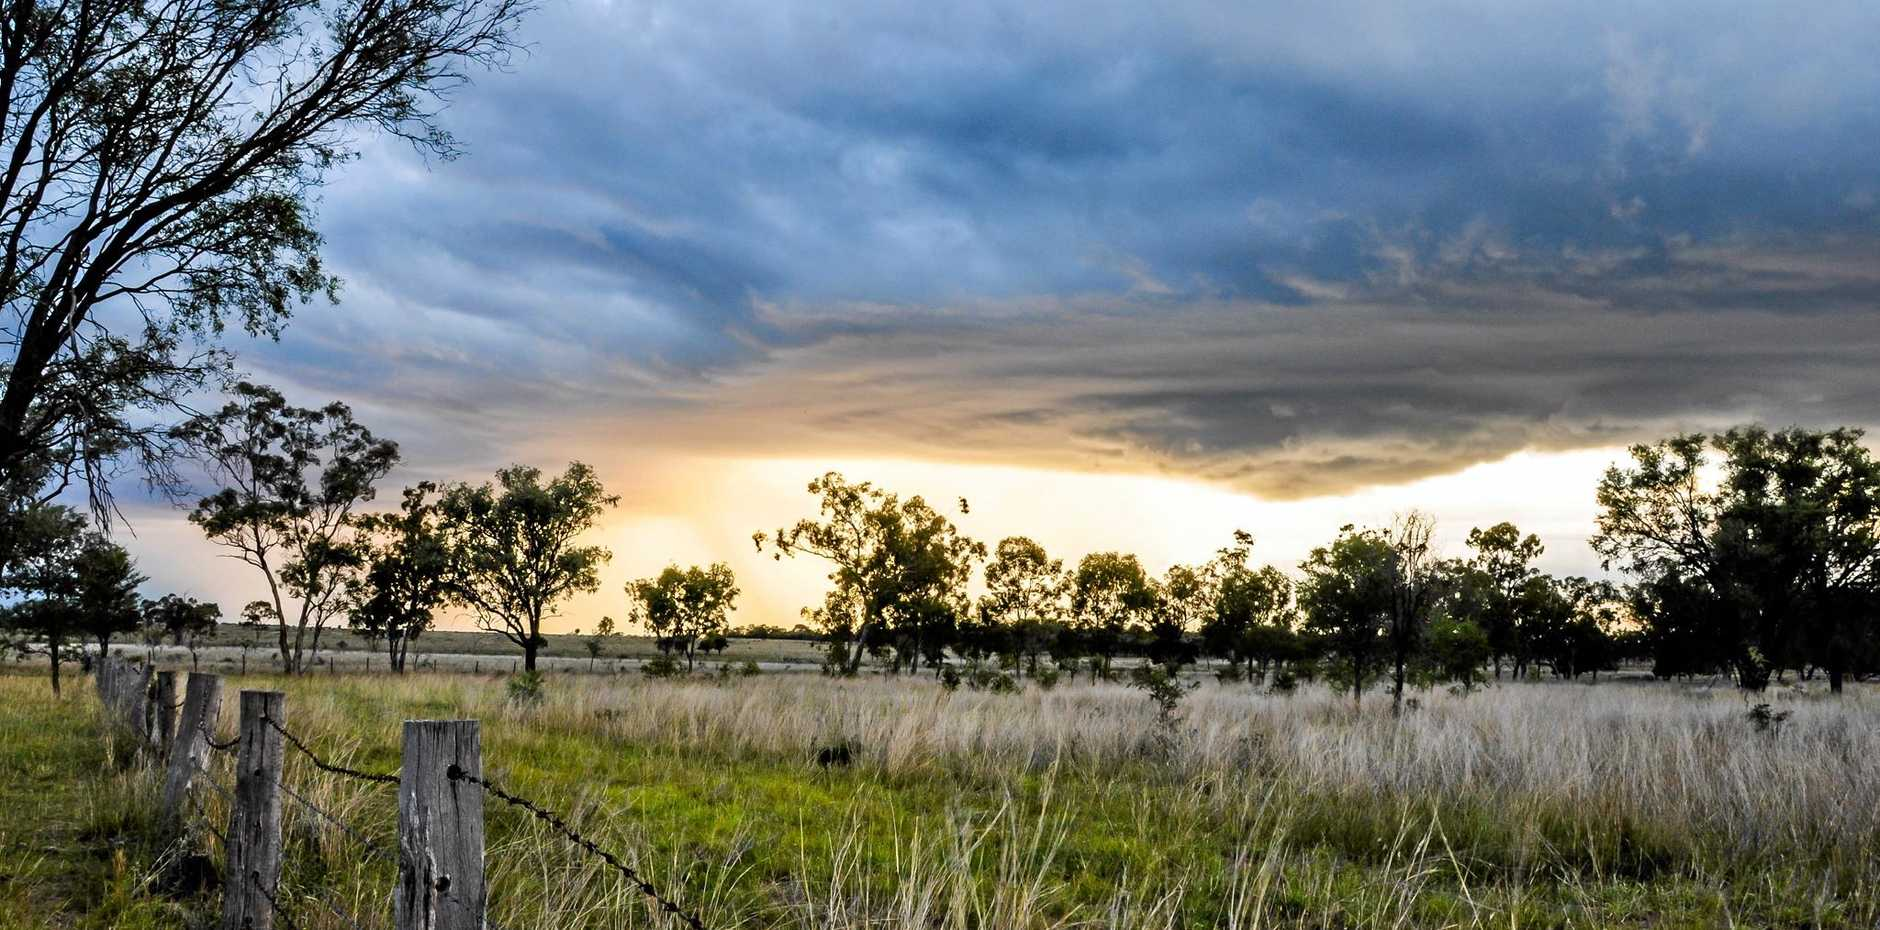 Roma and the Maranoa region missed out on most of the rain over the weekend.